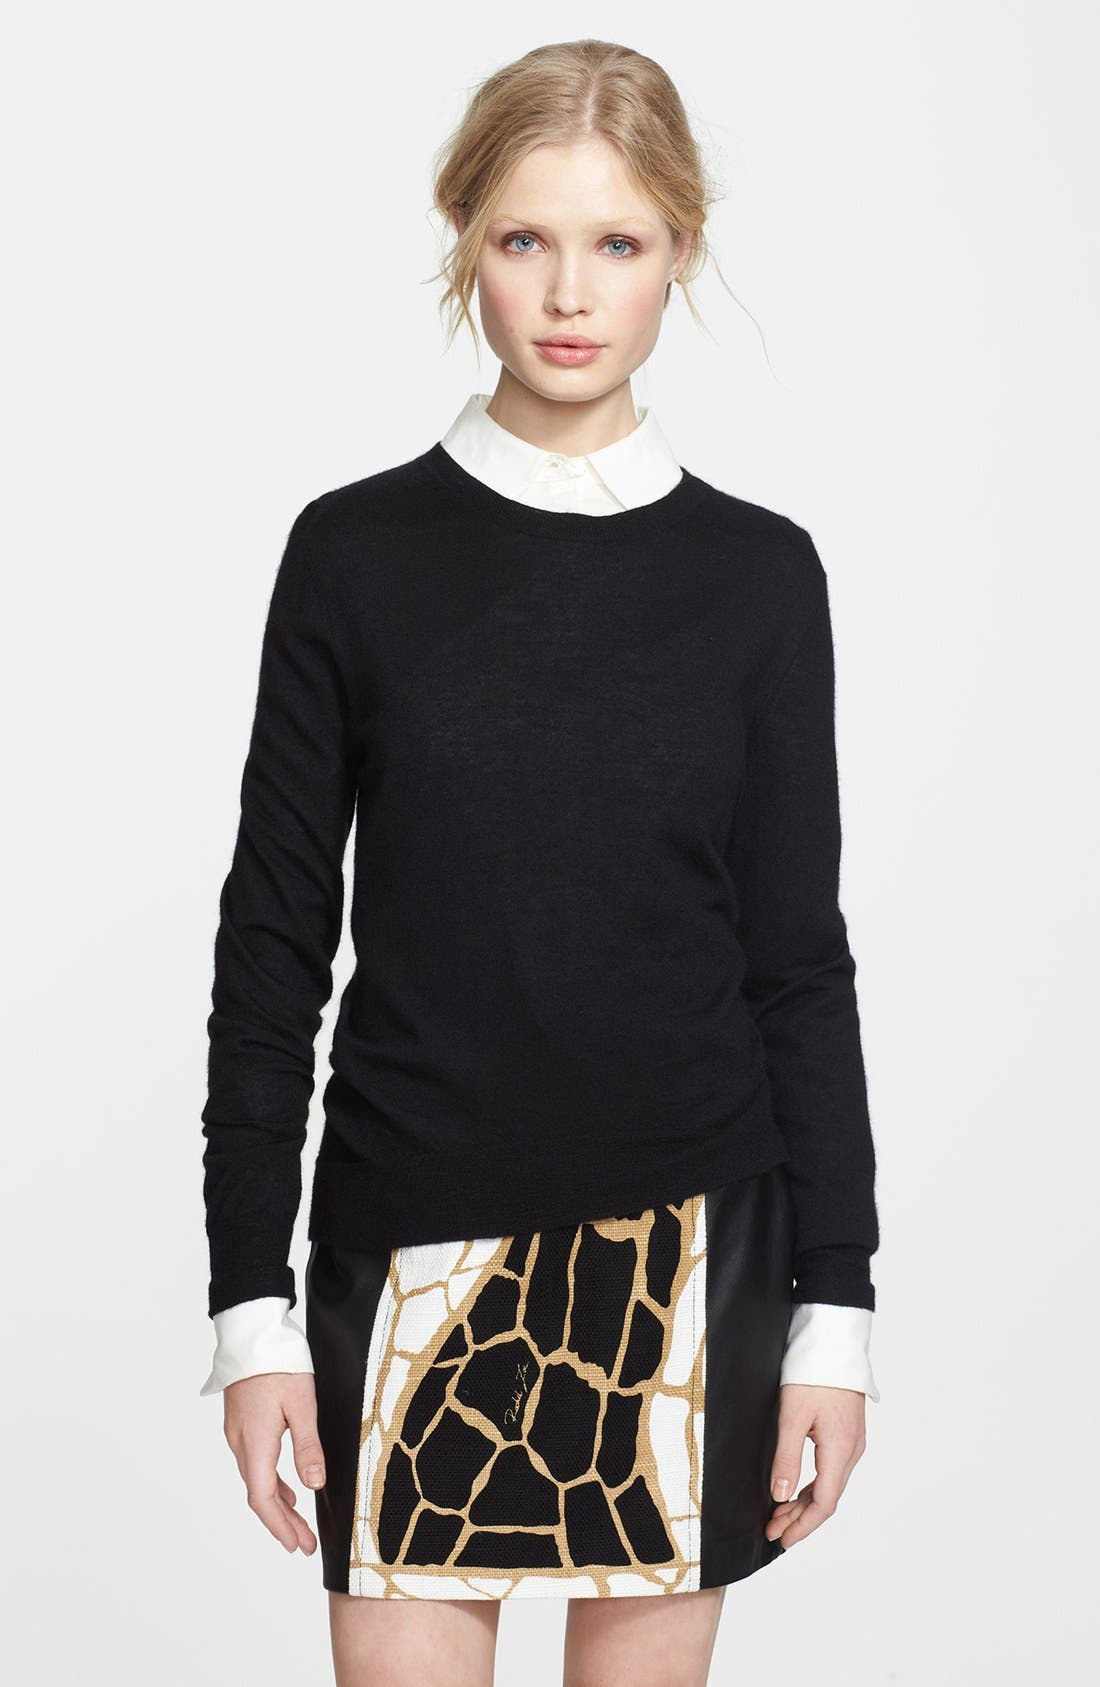 Alternate Image 1 Selected - Rachel Zoe Cashmere Sweater & Miniskirt